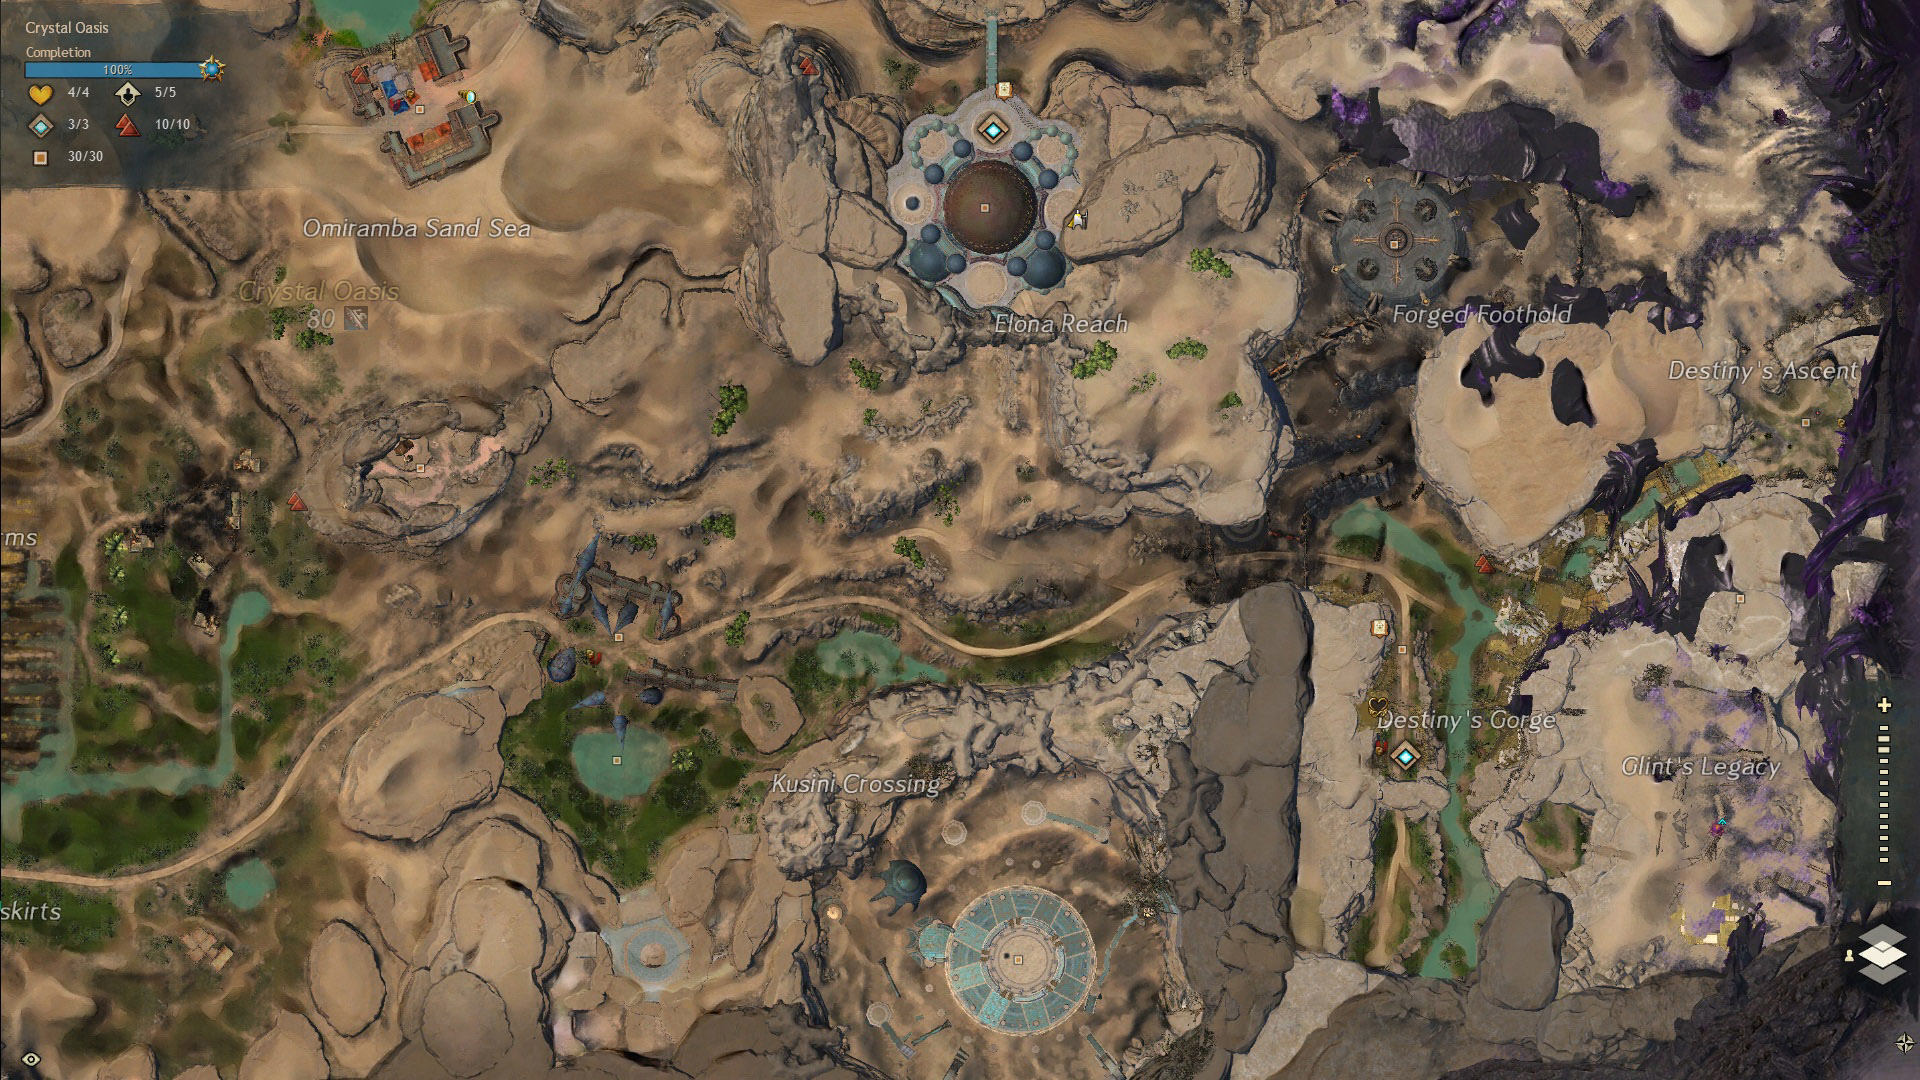 Guild Wars 1 World Map.Co Optimus Editorial Mmo Co Opportunities Volume Lxxxii Guild